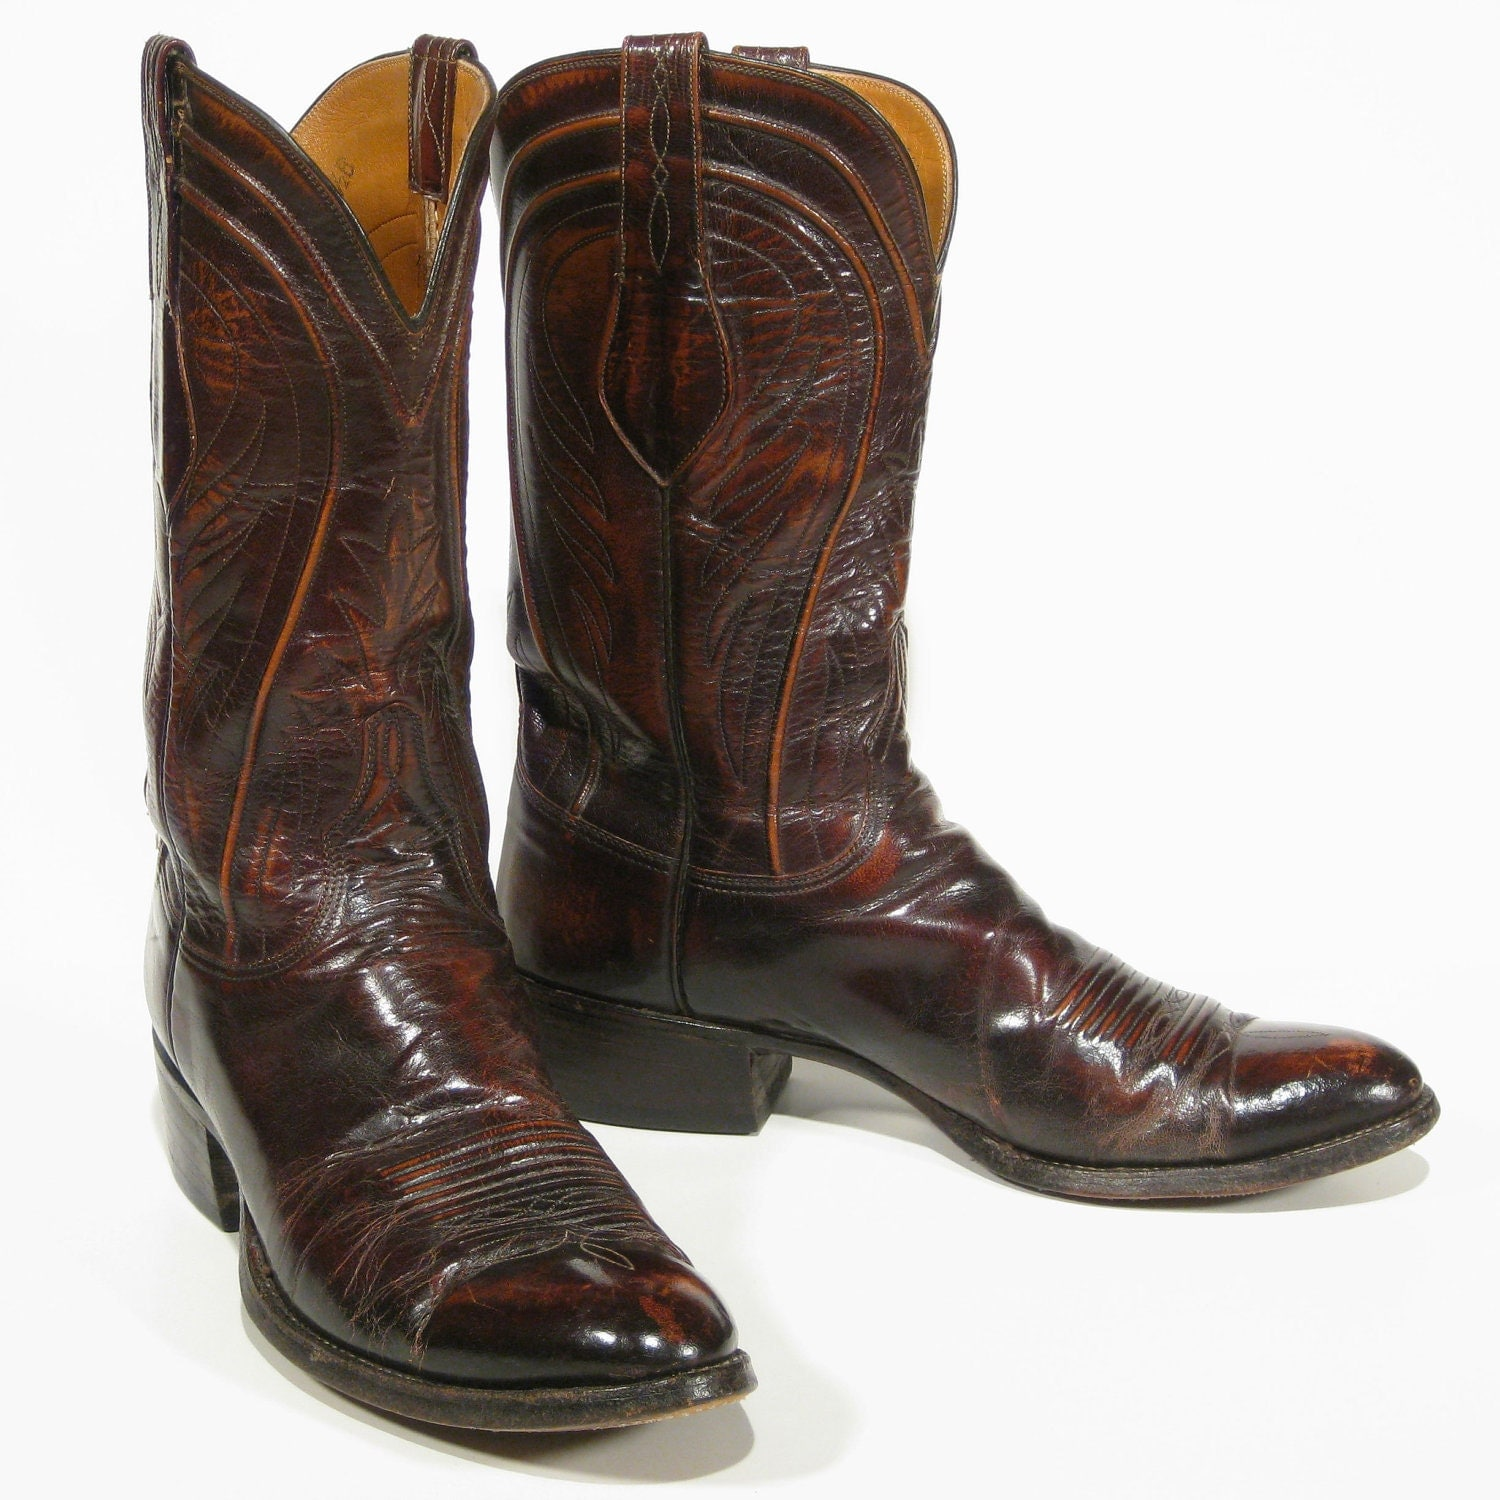 vintage s cowboy boots 10 5 b lucchese